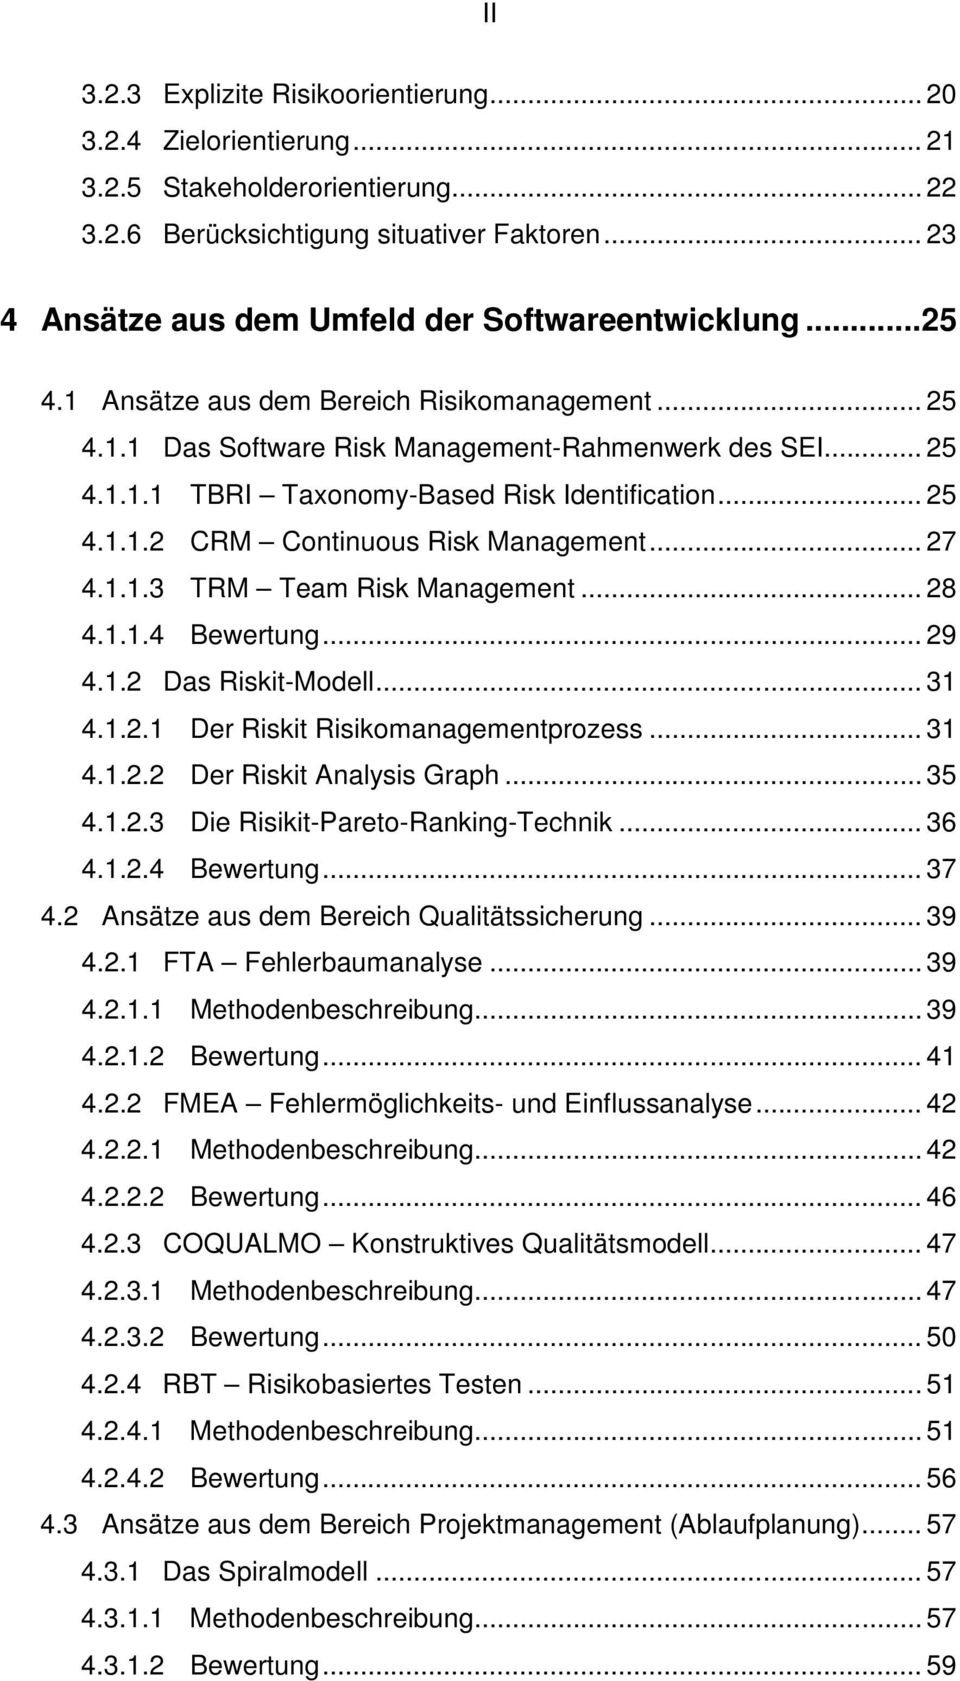 .. 25 4.1.1.2 CRM Continuous Risk Management... 27 4.1.1.3 TRM Team Risk Management... 28 4.1.1.4 Bewertung... 29 4.1.2 Das Riskit-Modell... 31 4.1.2.1 Der Riskit Risikomanagementprozess... 31 4.1.2.2 Der Riskit Analysis Graph.